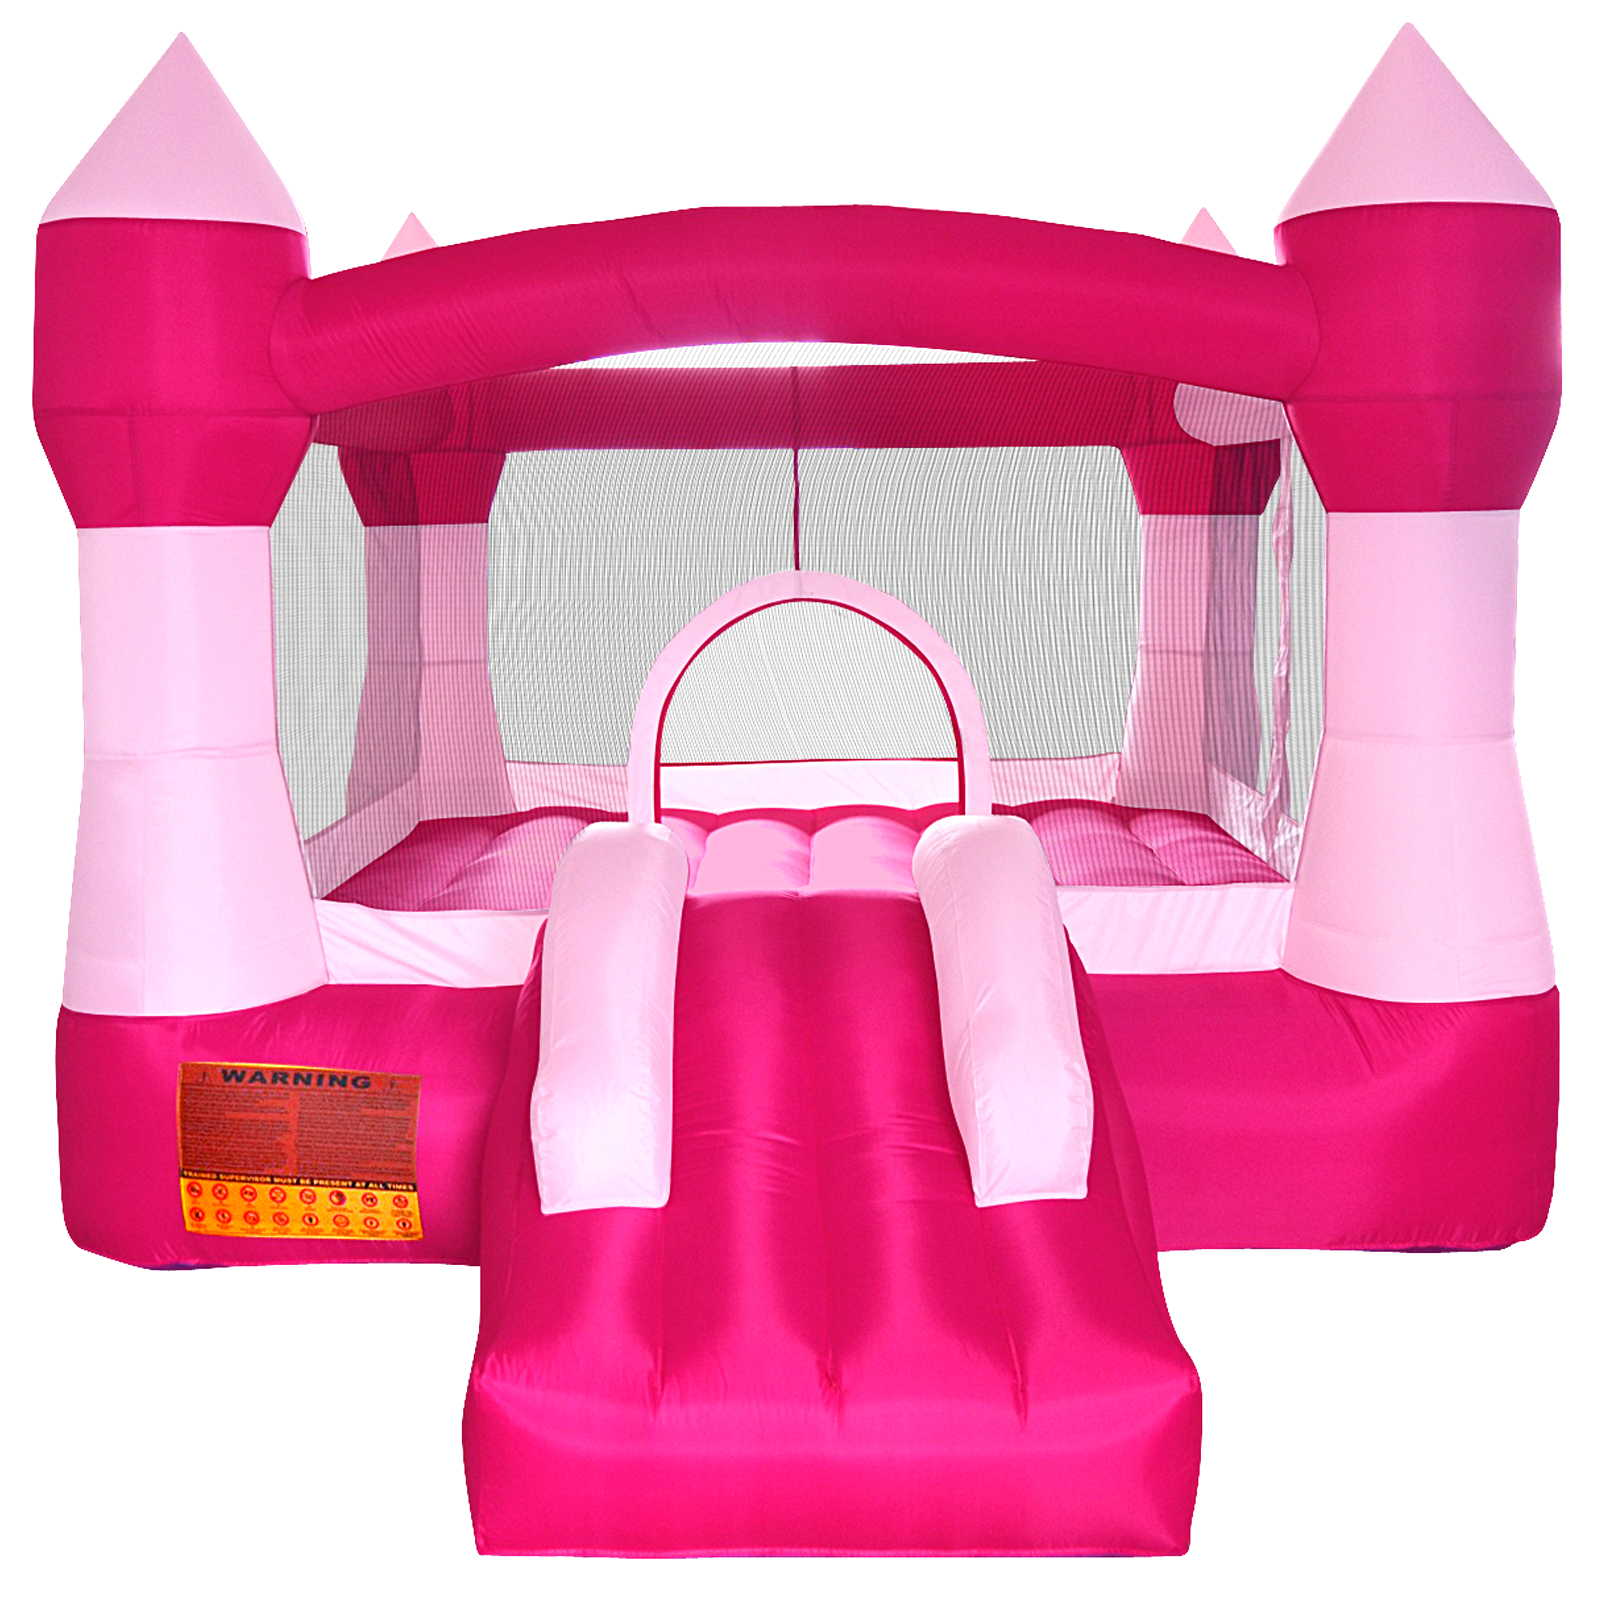 Cloud 9 Princess Bounce House Inflatable Pink Castle without Blower by Cloud 9